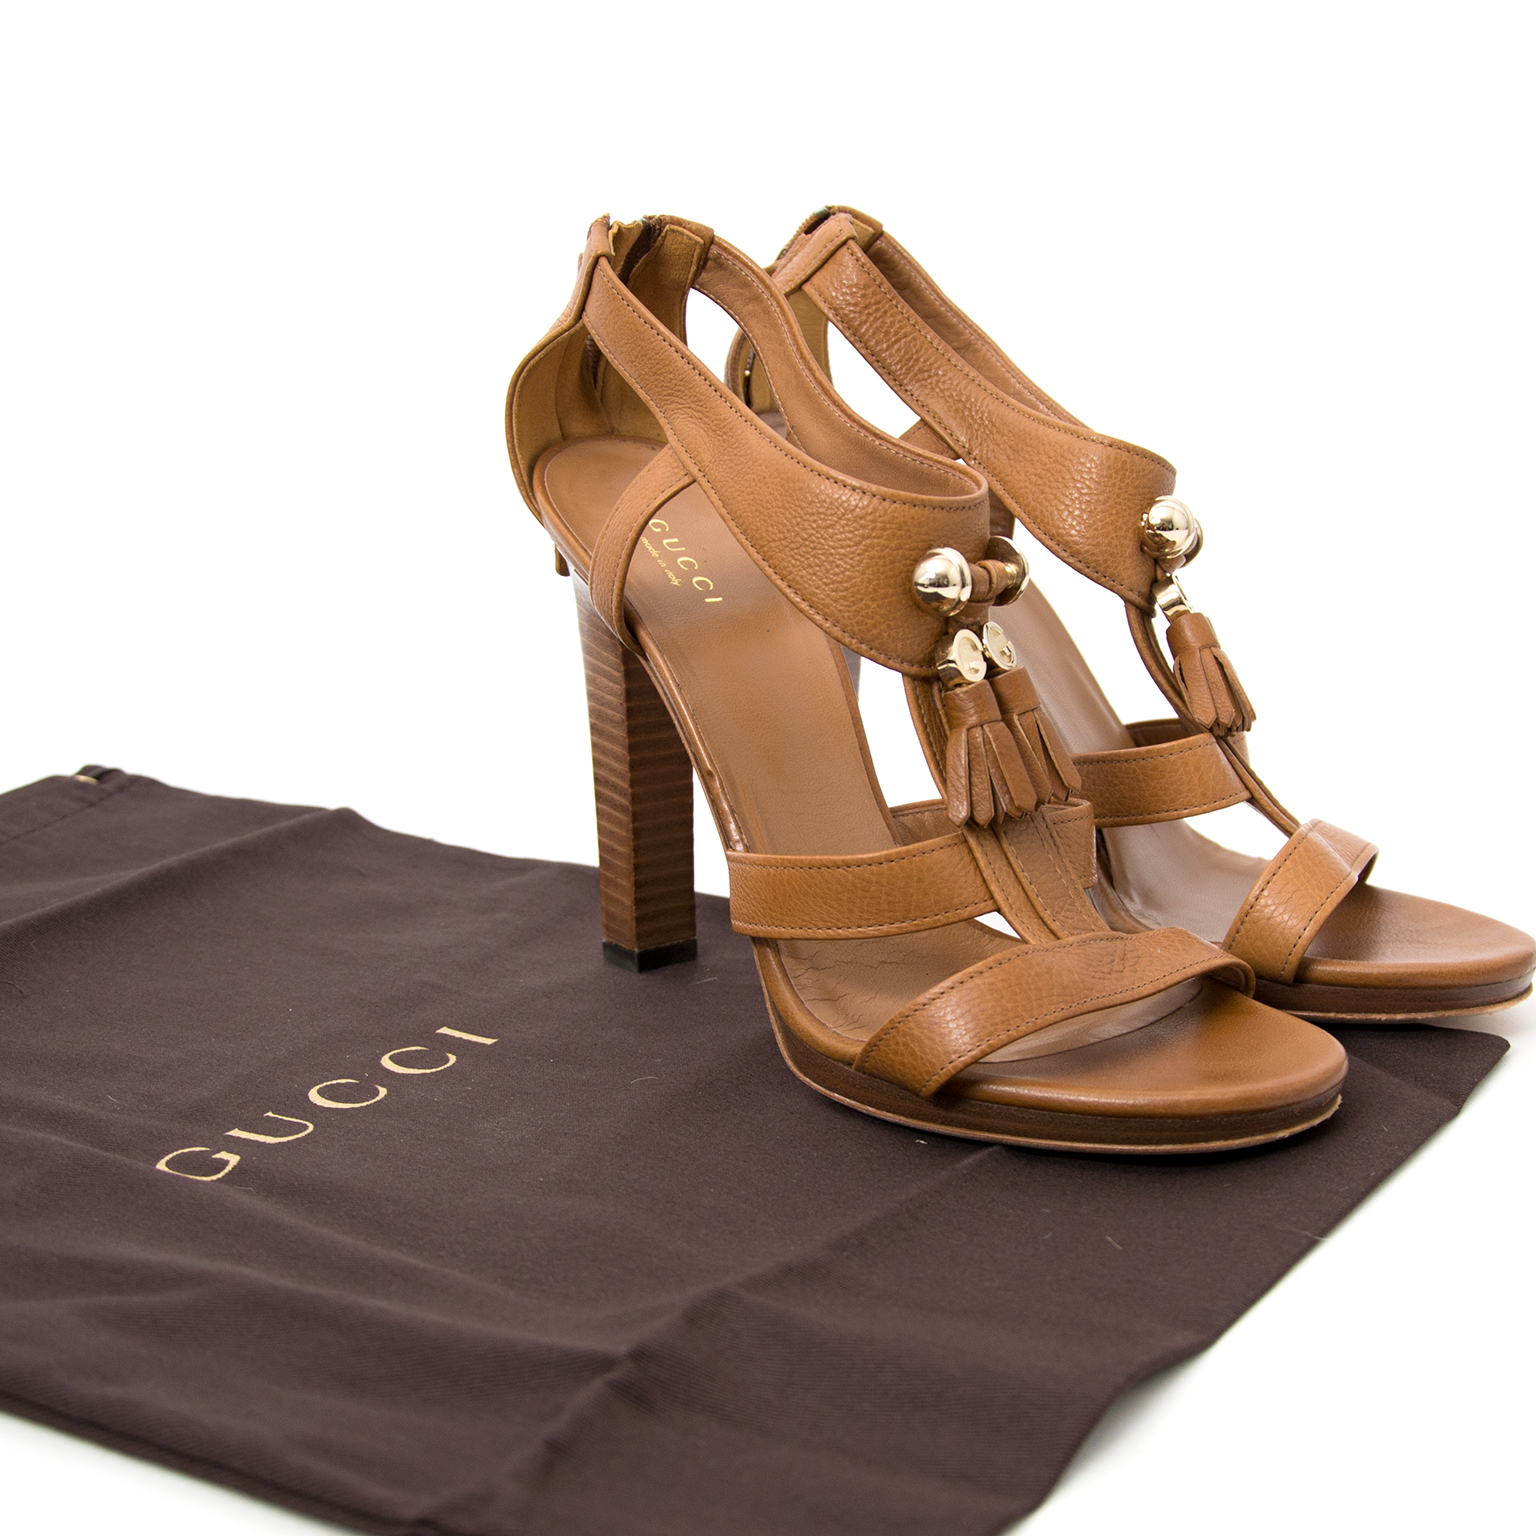 10f5e67cf8503 ... Gucci Marrakech High Heel Sandal now online at labellov.com for the  best price